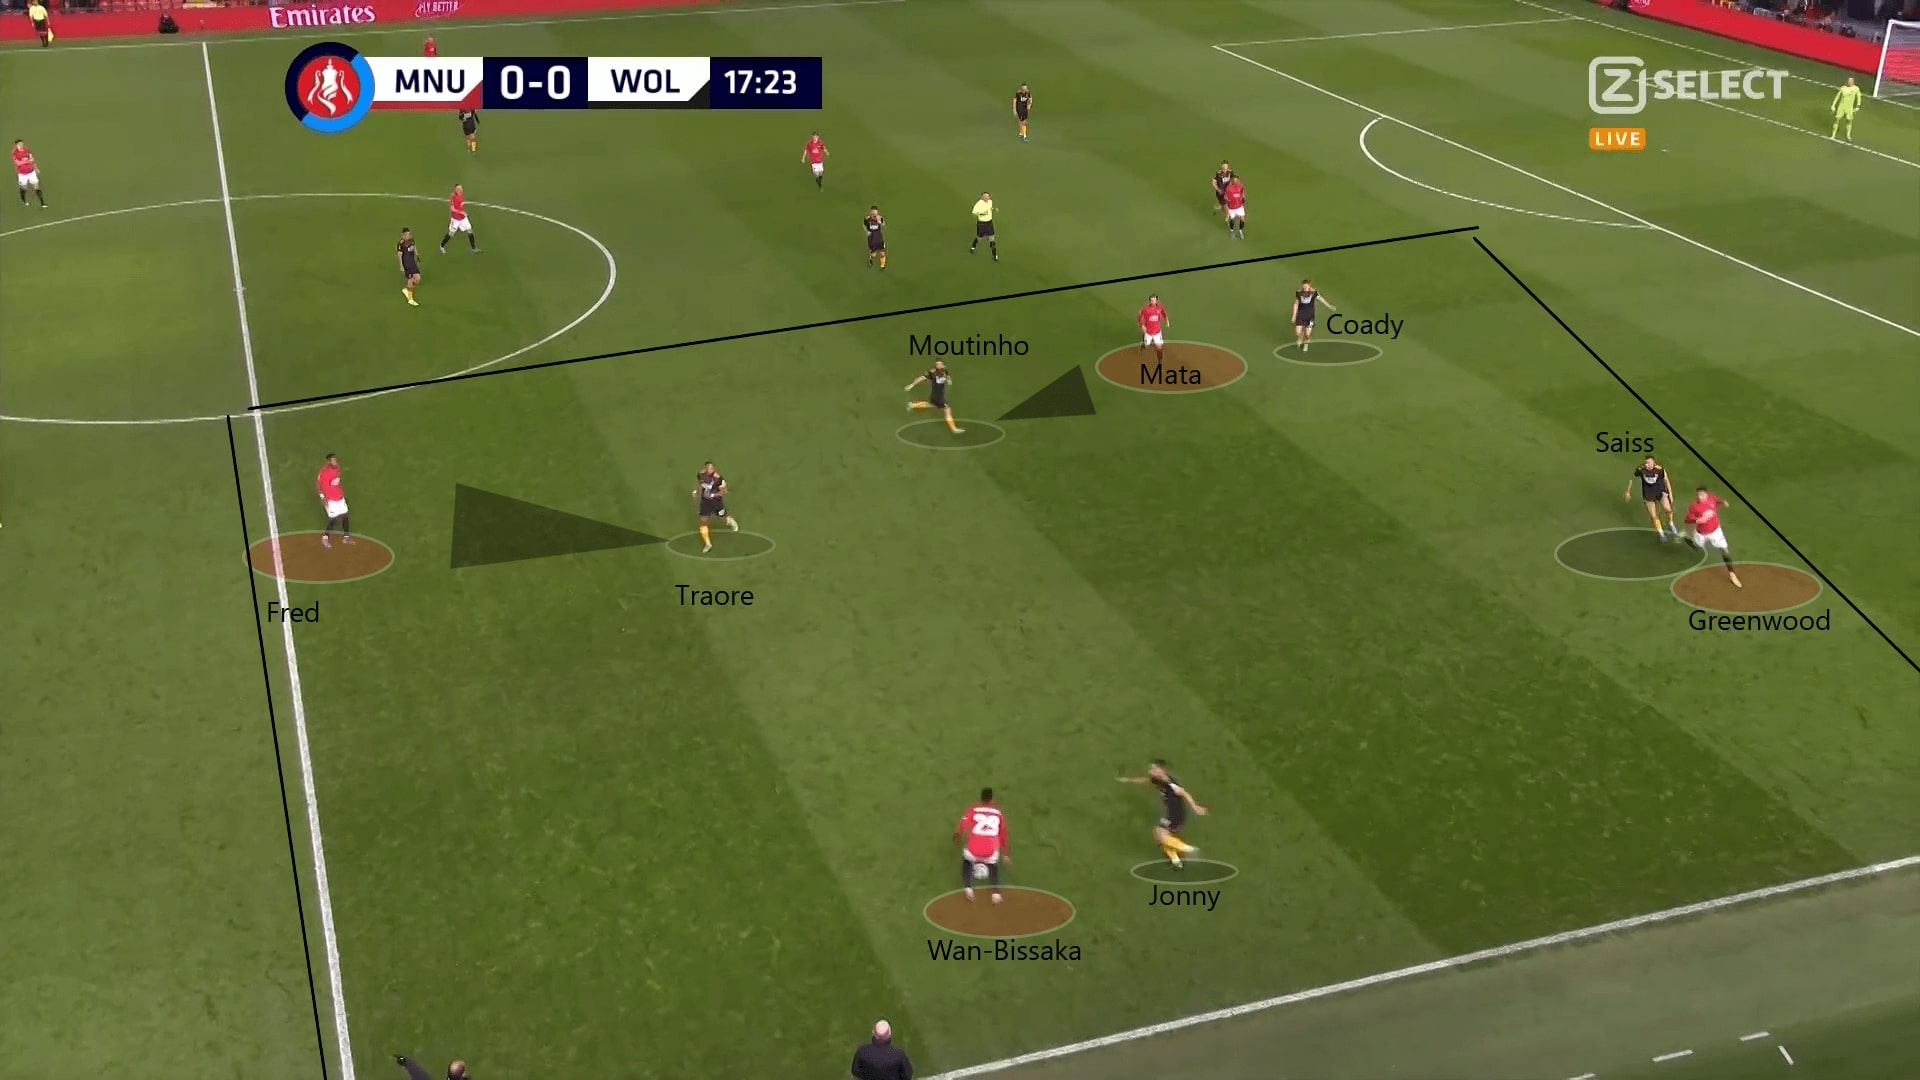 FA Cup 2019/20: Manchester United vs Wolves - tactical analysis tactics